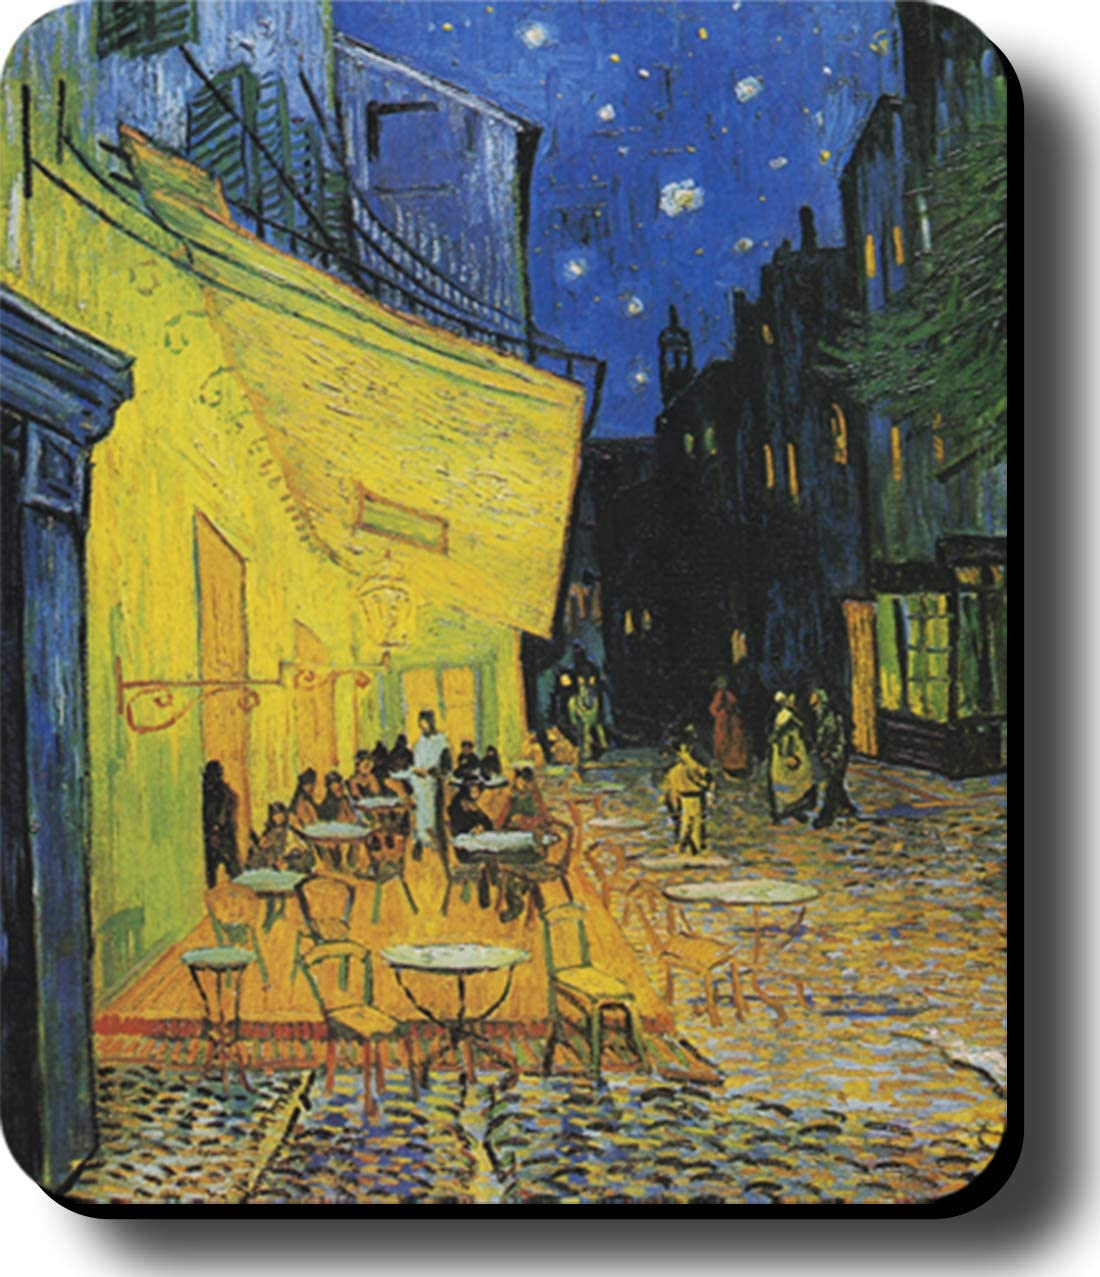 Computer Mouse Pad Art Print Painting Van Gogh Cafe Terrace 9.25 x 7.75 x 1//8 in Thick Non Slip Backing